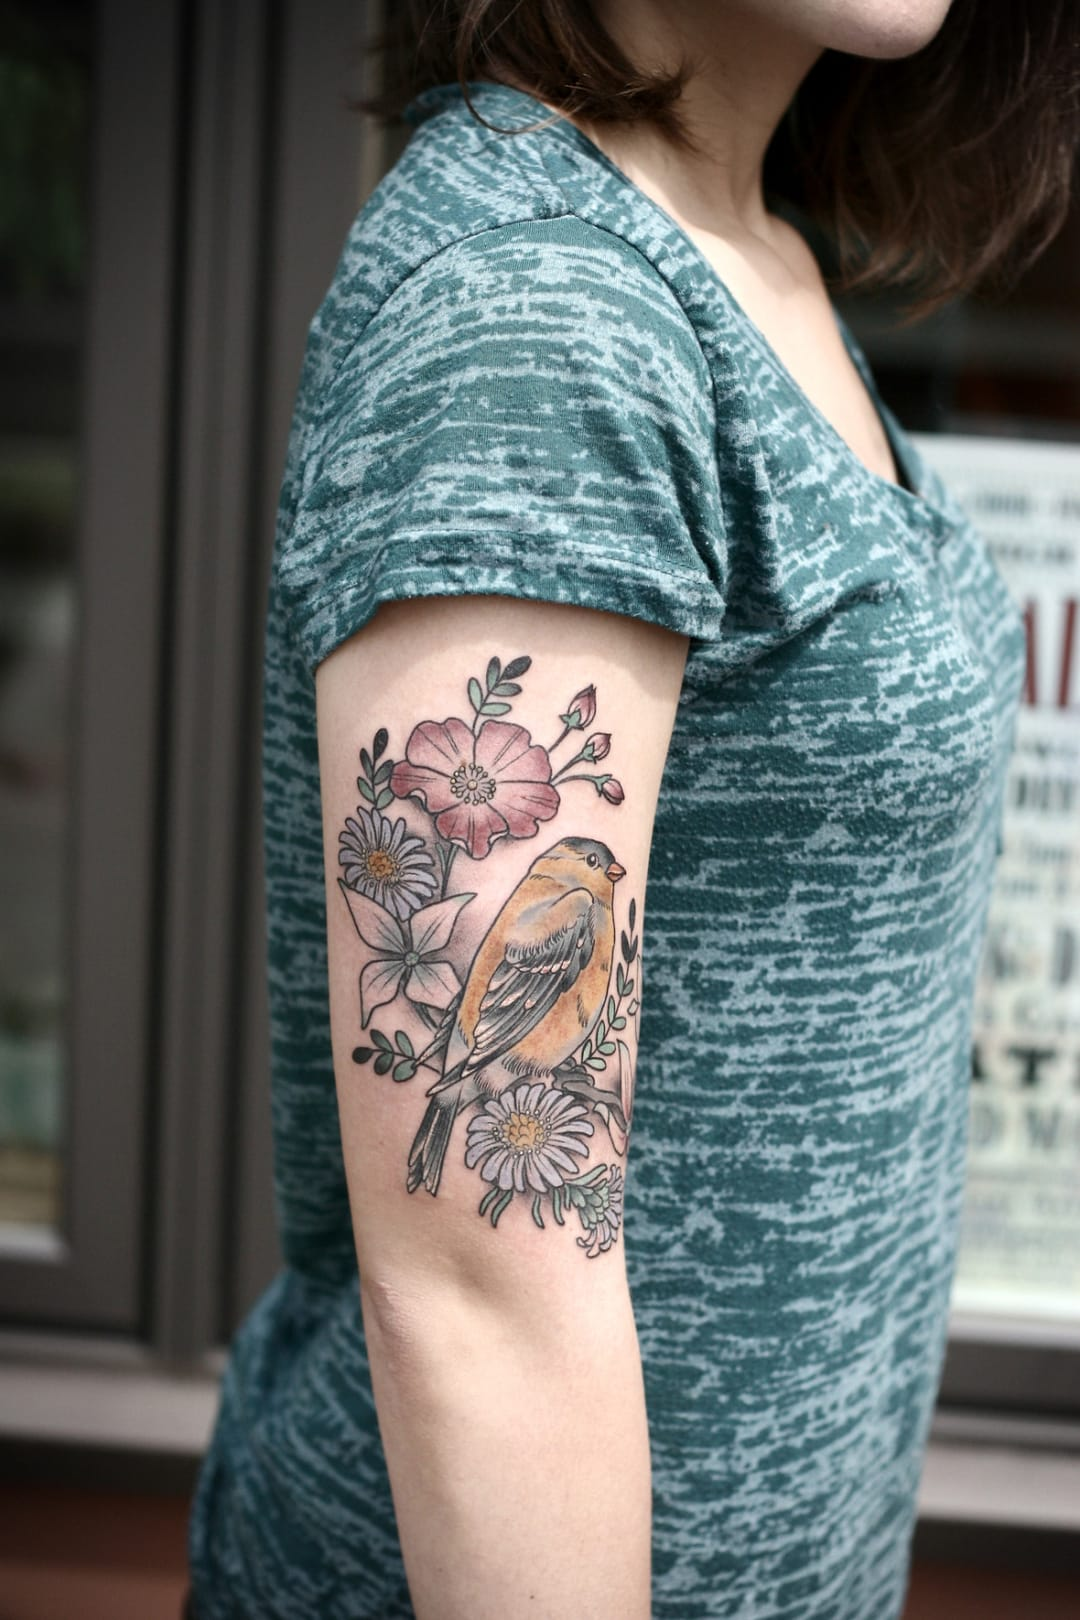 Bird and flowers tattoo.